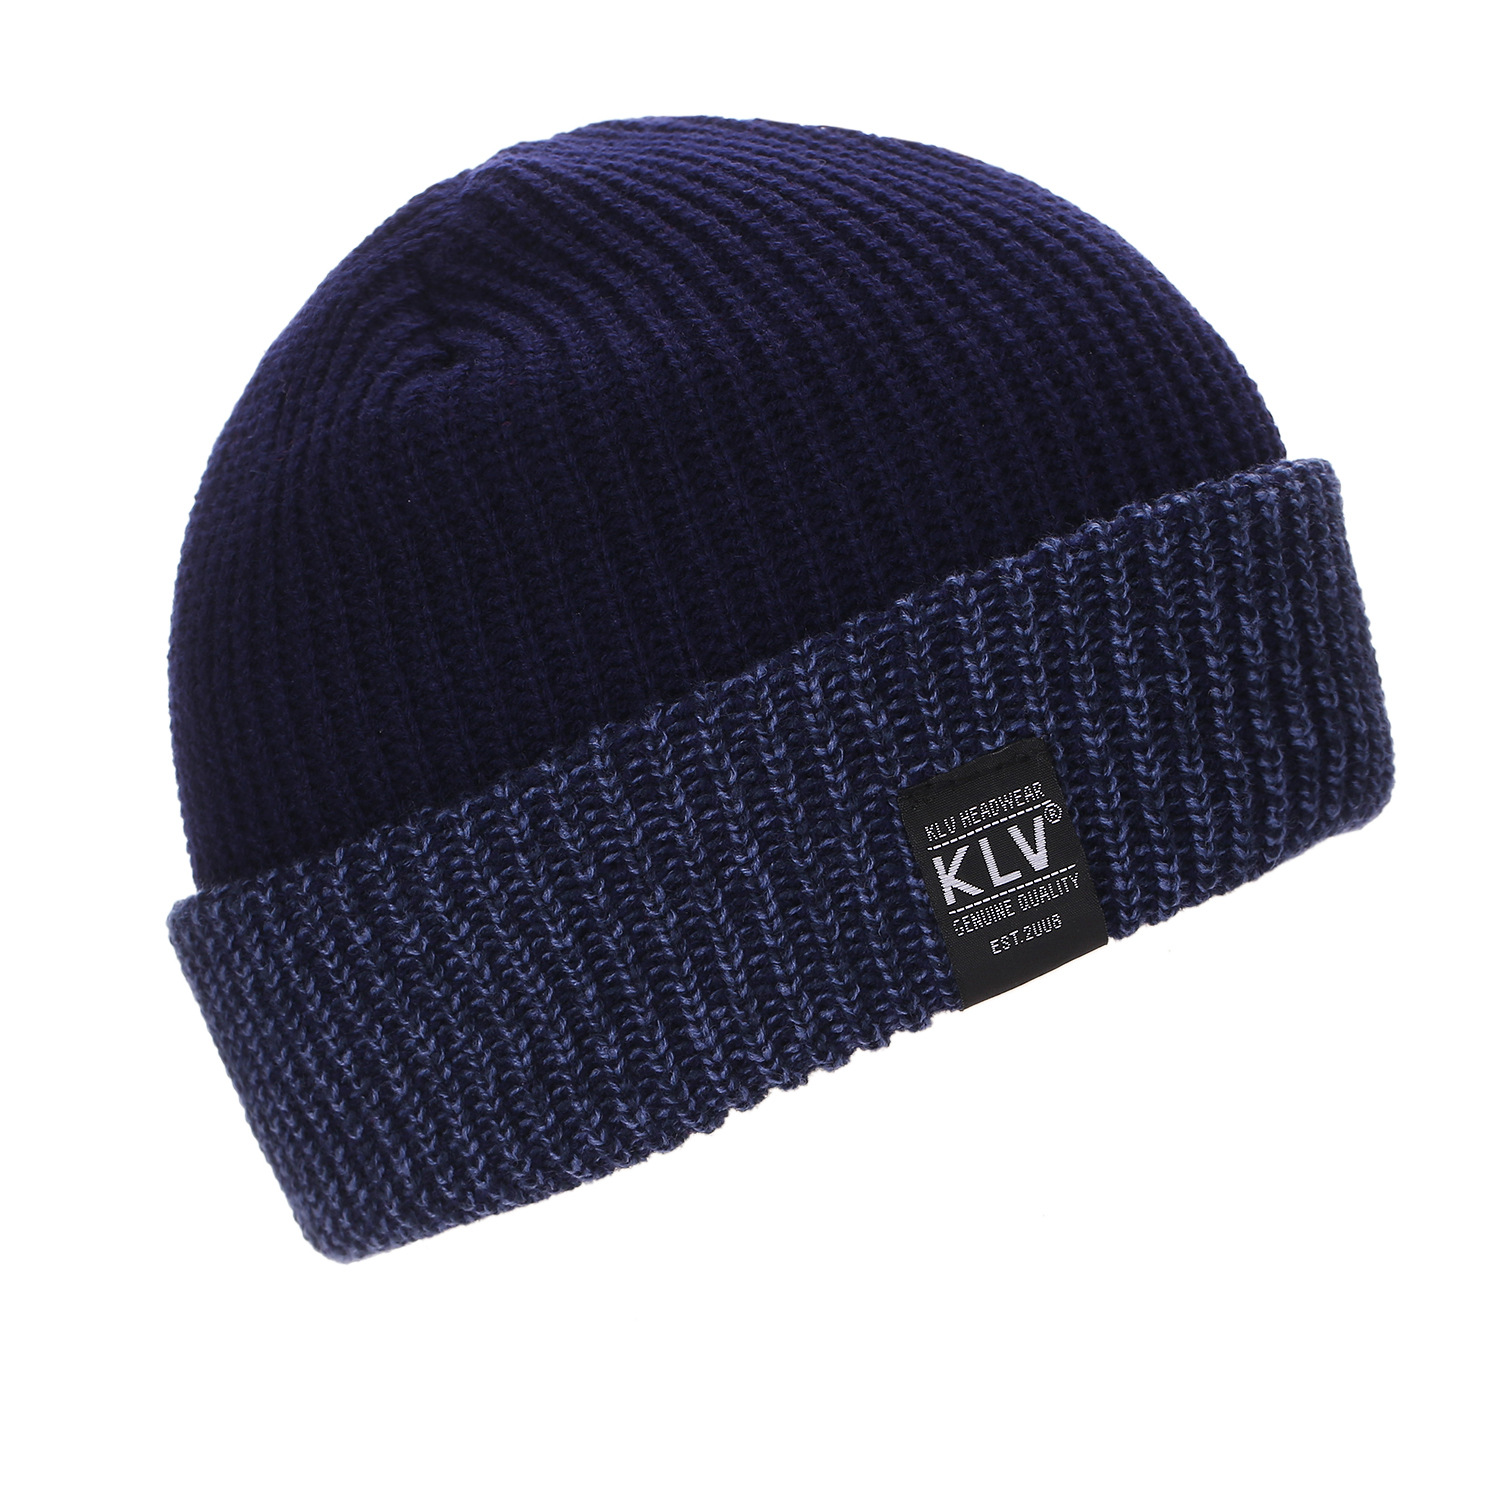 2017 Hot Sale Acrylic Adult Unisex Casual Solid New Autumn Winter Hat Taxi Thick Double Knit Cuffs Ski Cap Outdoor Recreation hot winter beanie knit crochet ski hat plicate baggy oversized slouch unisex cap